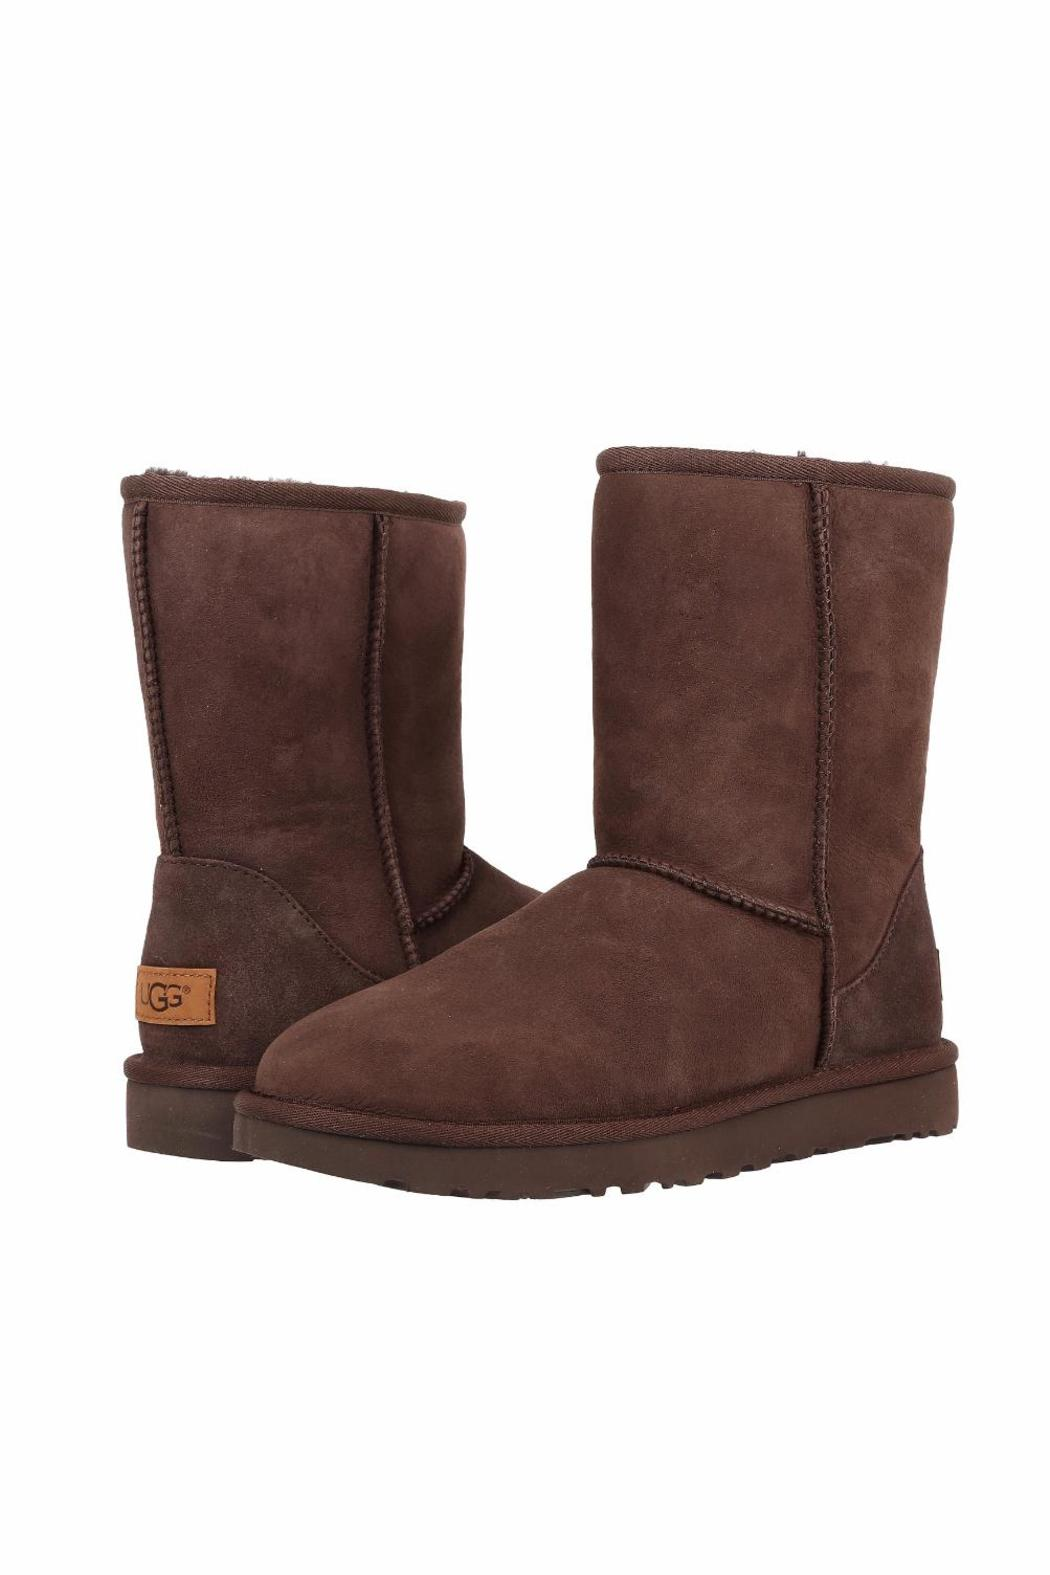 UGG Australia Ugg Classic Short Boots - Front Full Image